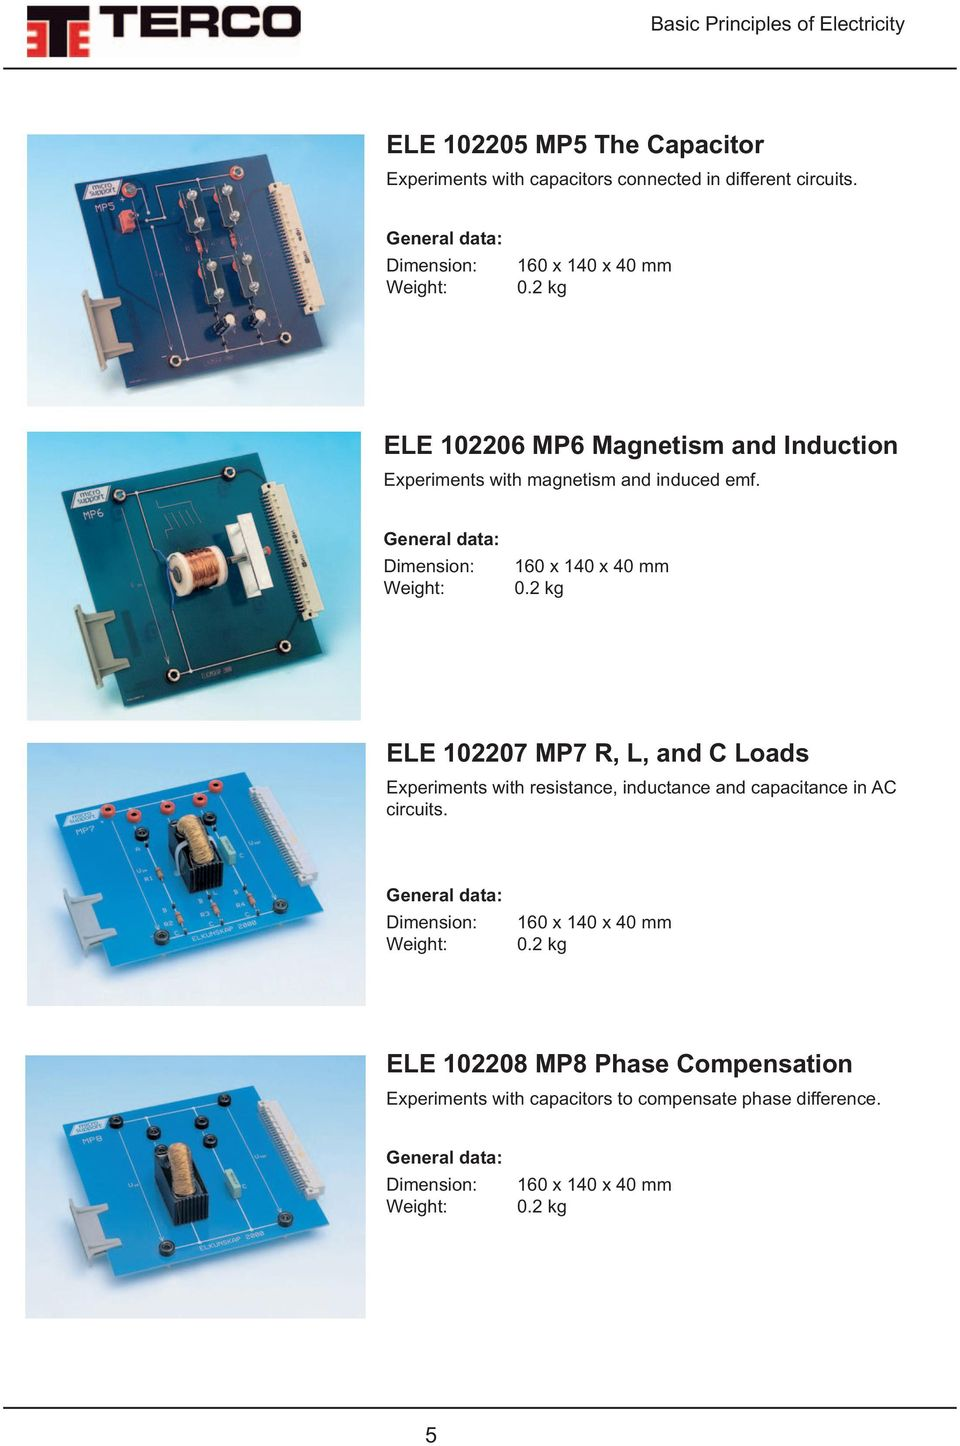 ELE 102207 MP7 R, L, and C Loads Experiments with resistance, inductance and capacitance in